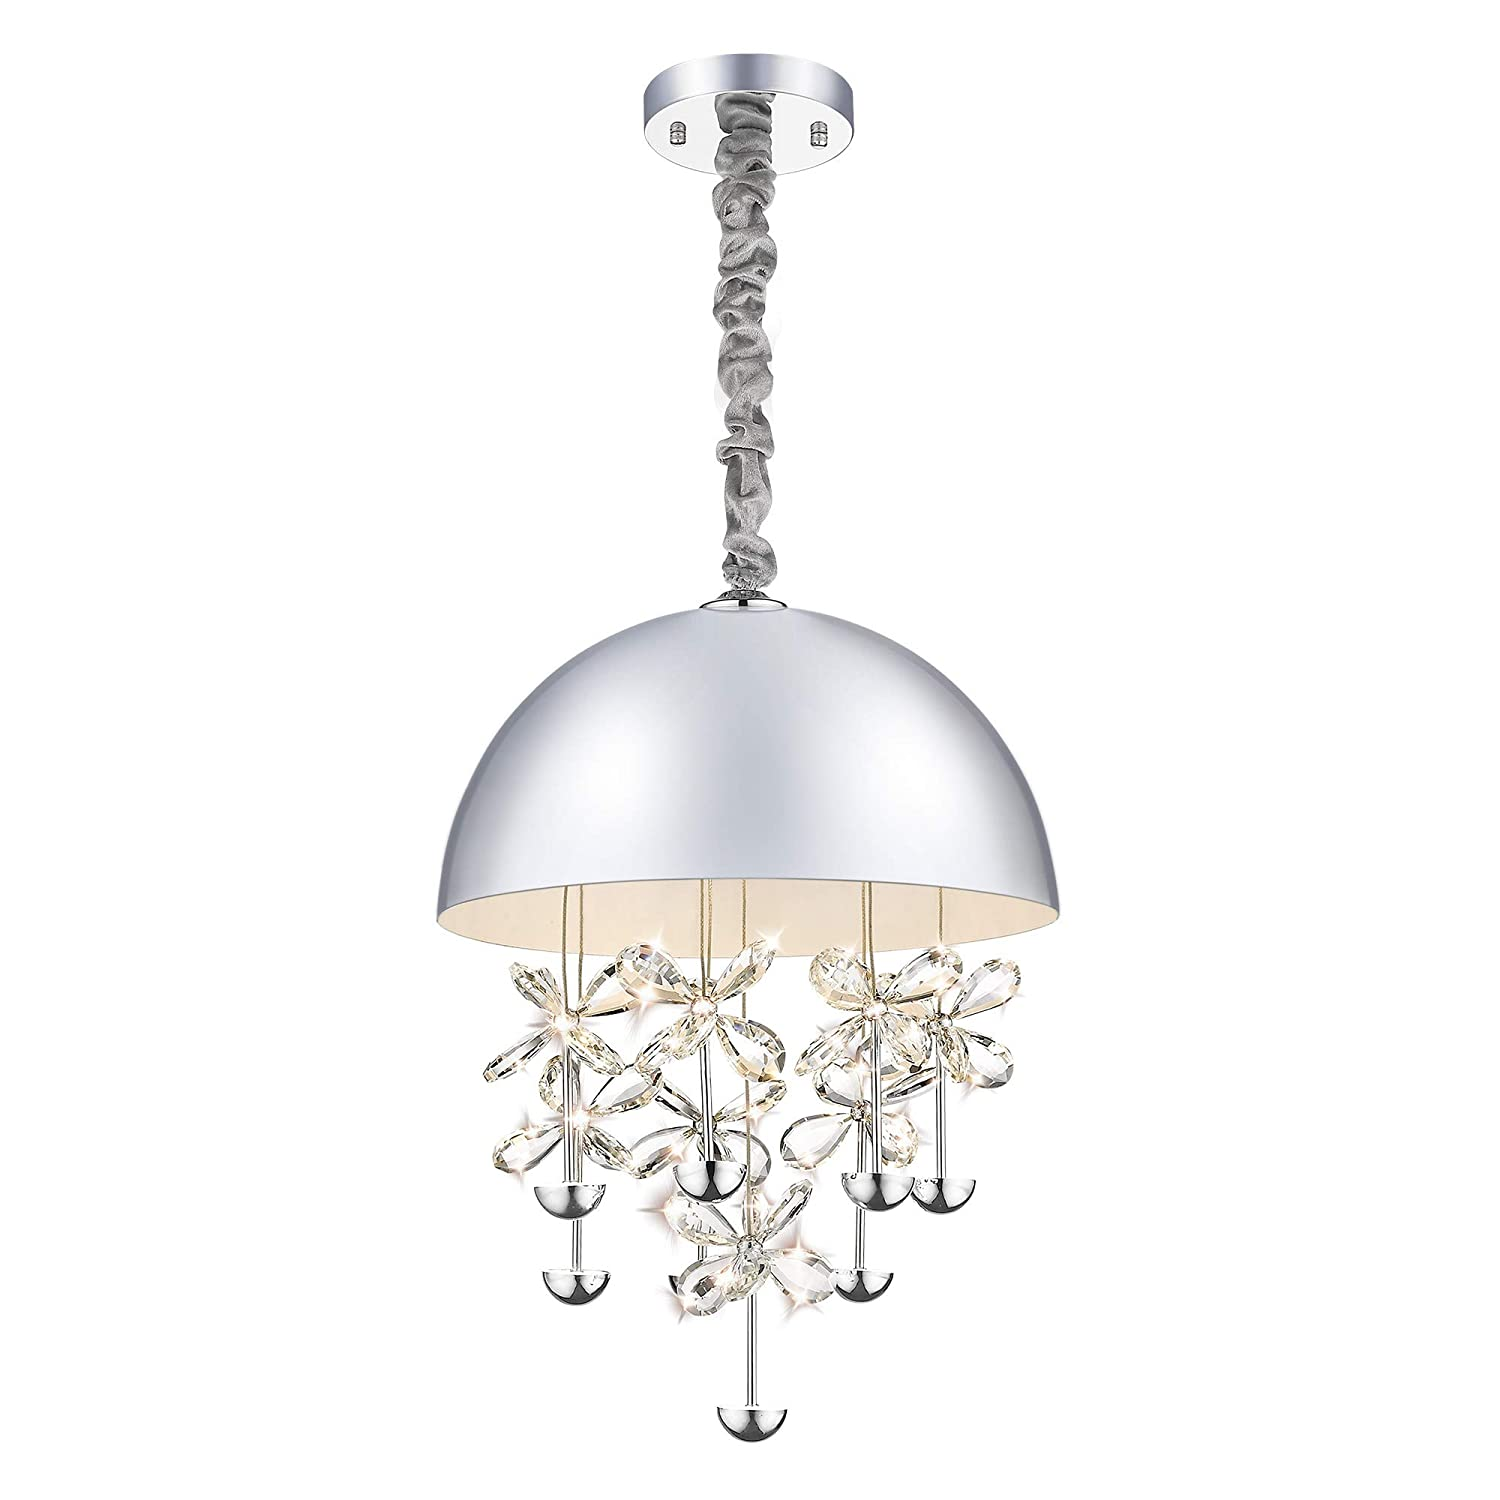 Modern crystal chandeliers 40w dimmable led pendant lights chrome lighting fixture 3000k warm white adjustable hanging cord for sitting room dining room